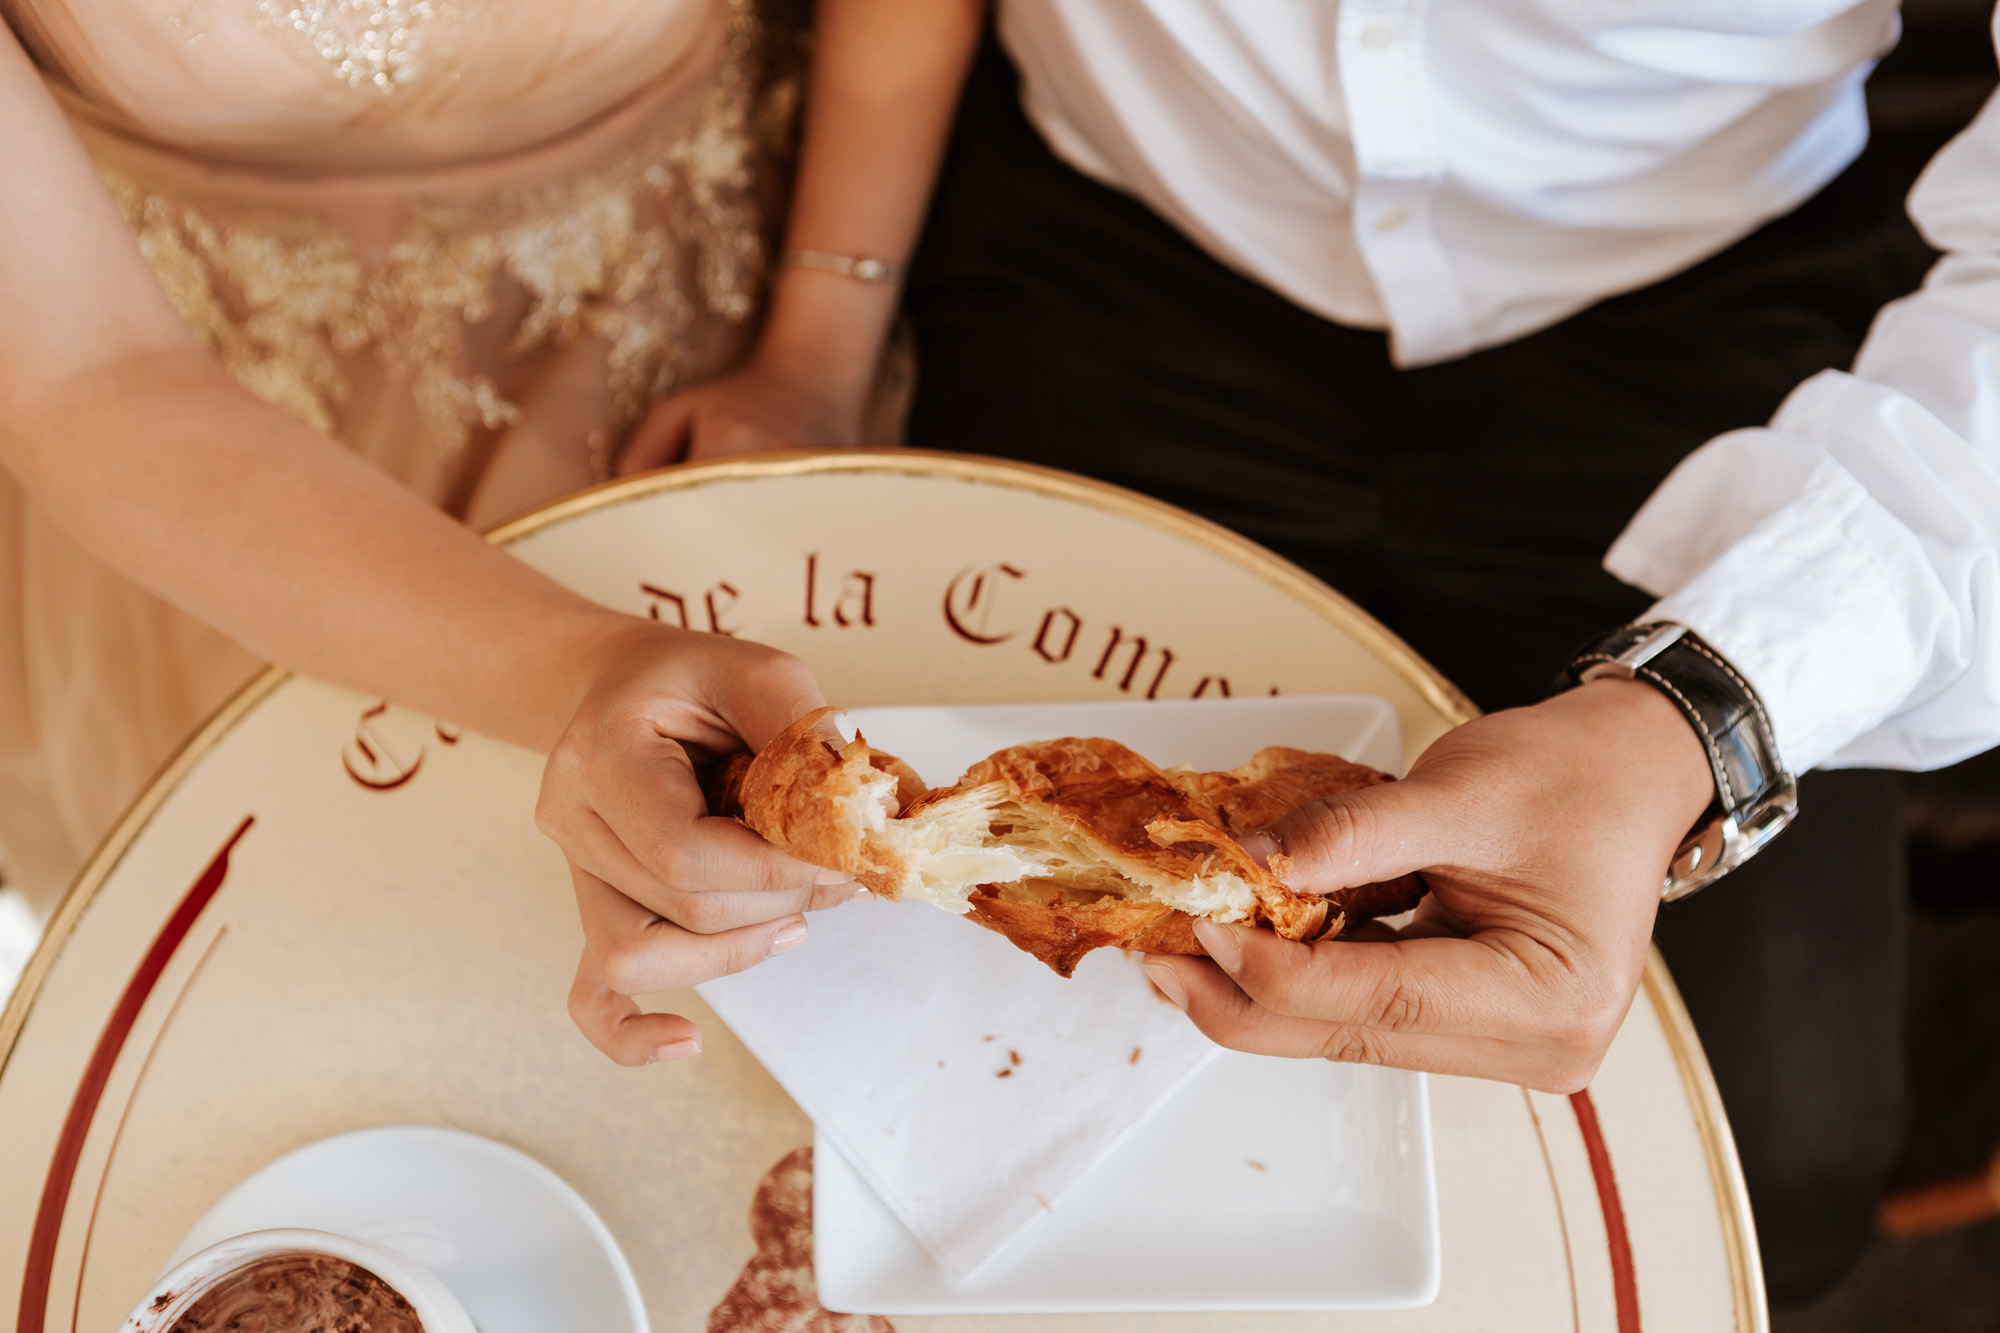 Cafe de la comedie couple pre-wedding photo session sharing croissant captured by Photographer in Paris Federico Guendel